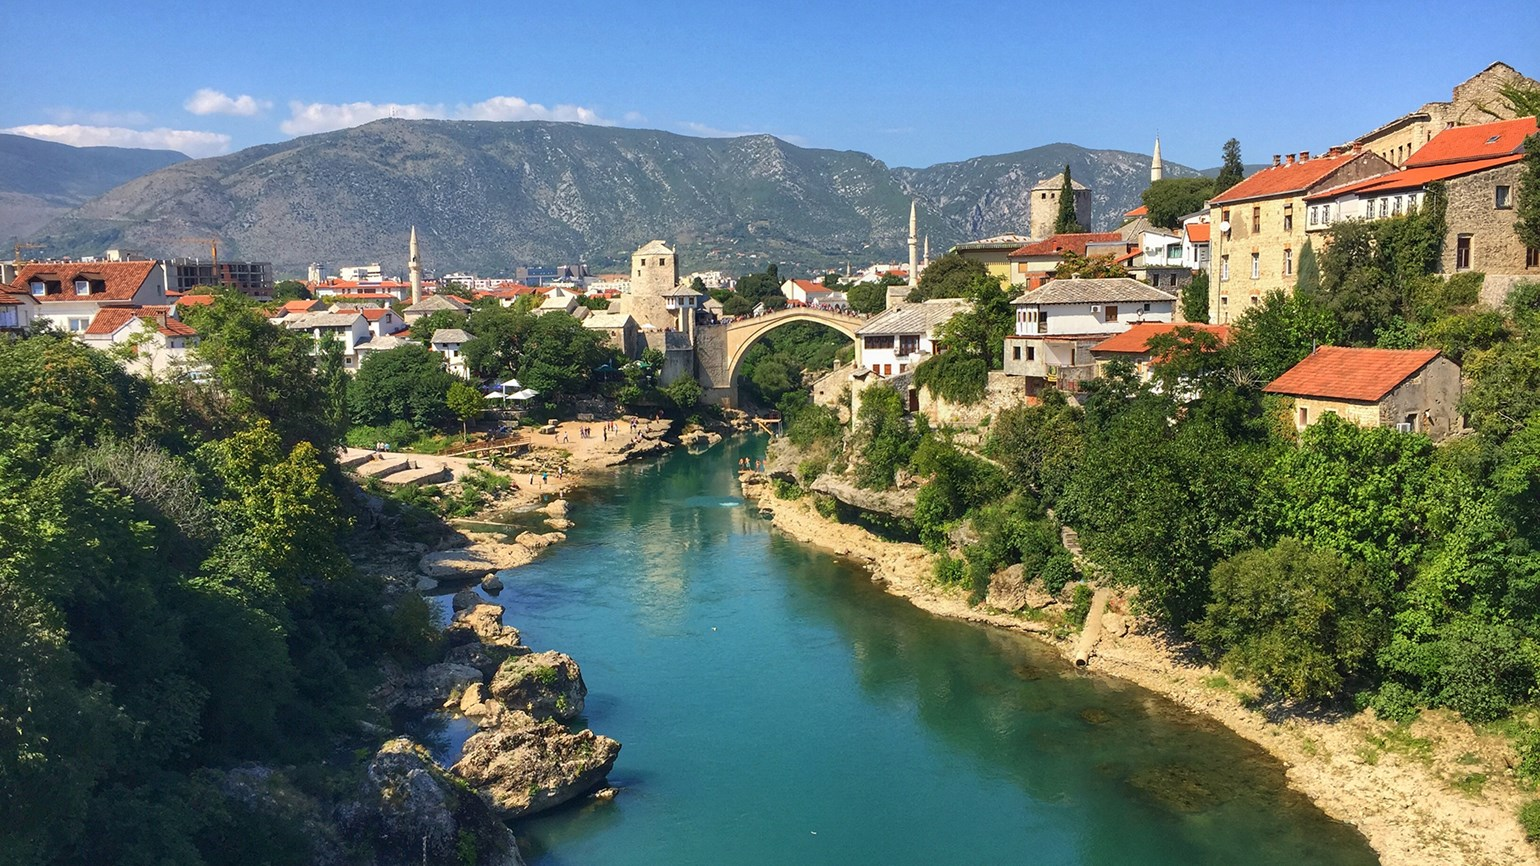 Hospitality and history on a Balkan odyssey